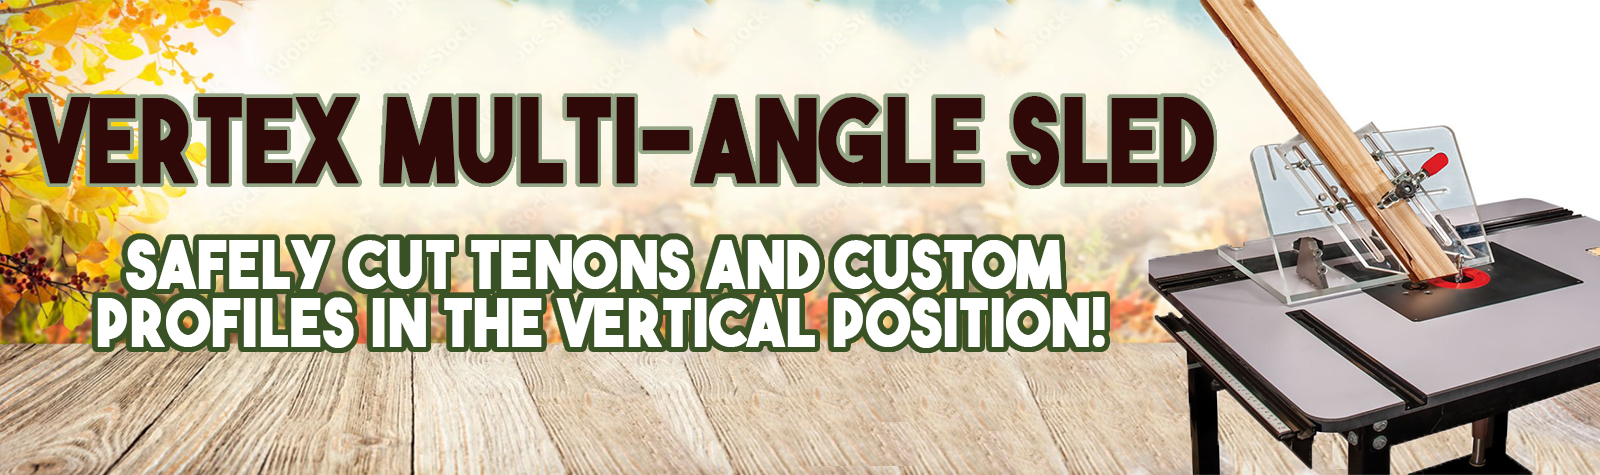 VERTEX Multi-Angle Sled Safely cut tenons and custom profiles in the vertical position!